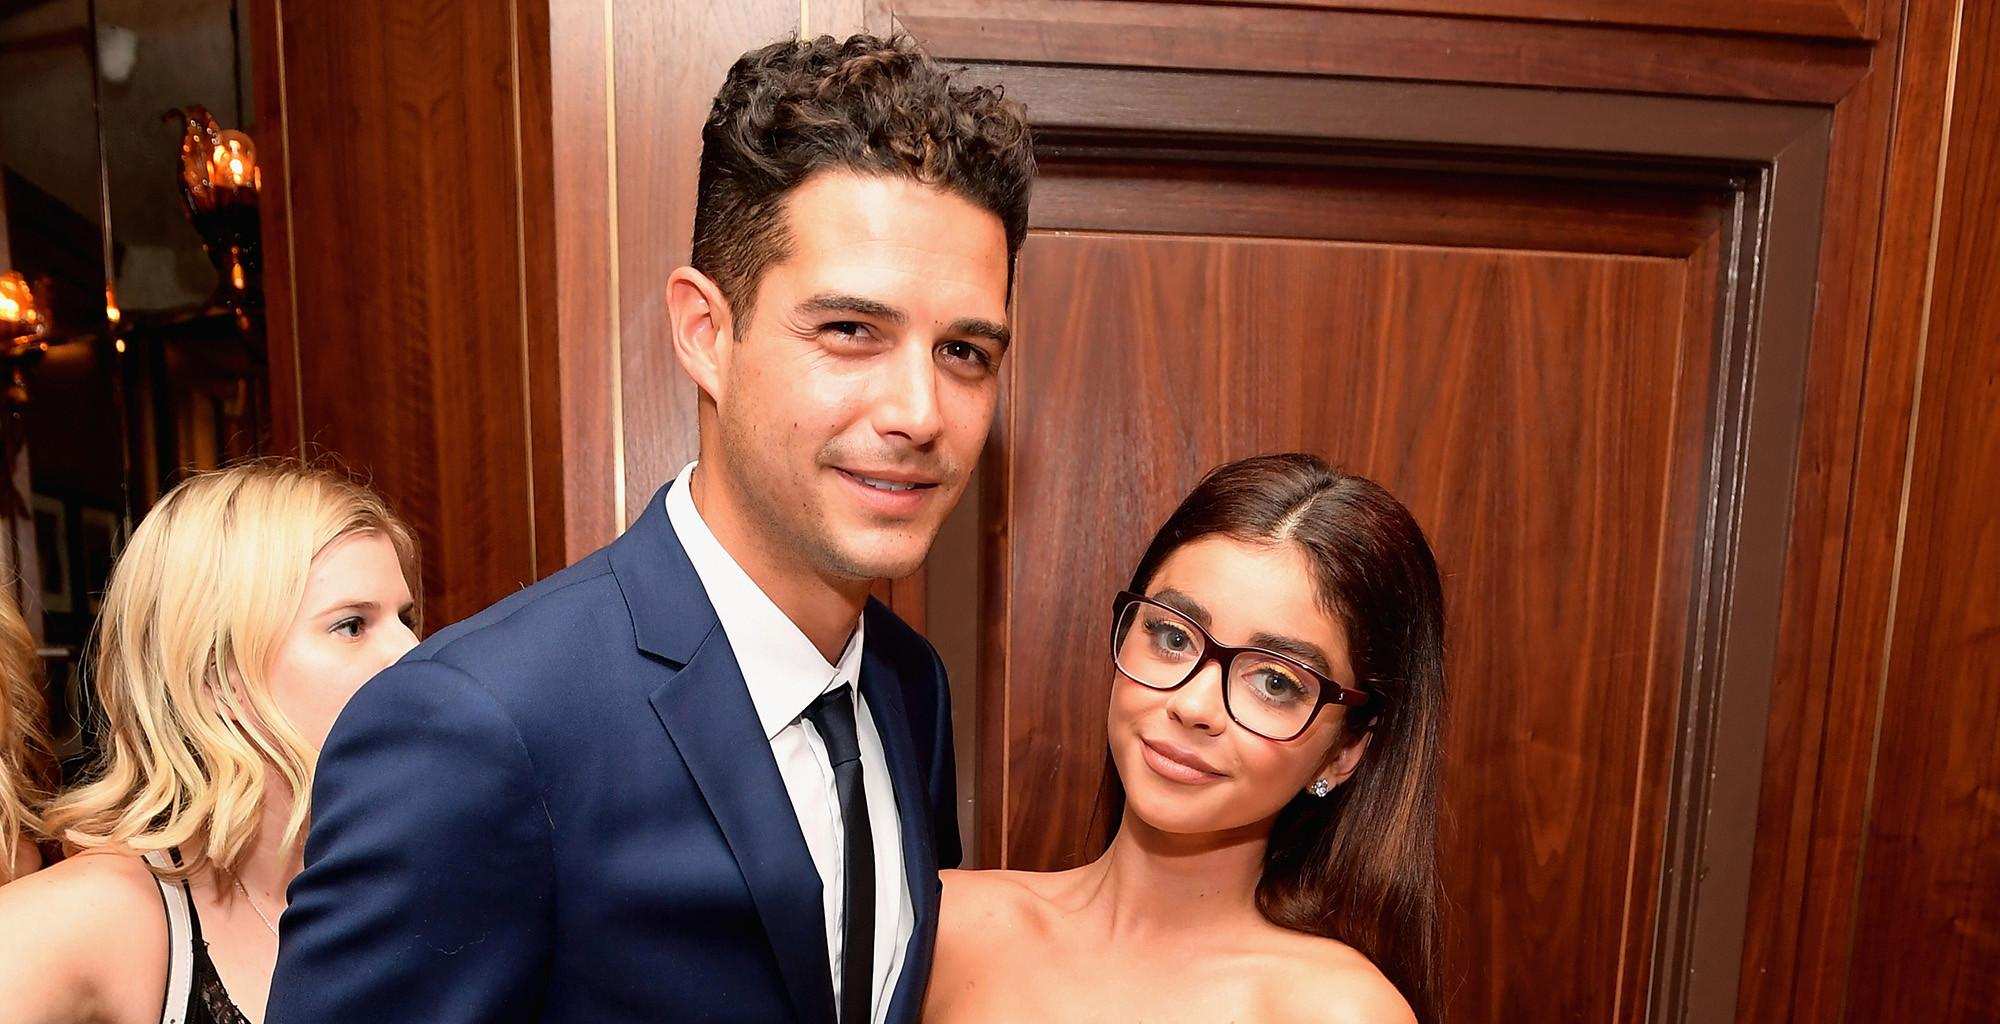 Wells Adams Says He's Not In A Hurry To Marry Sarah Hyland Despite Her Being 'The One' For Him - Here's Why!